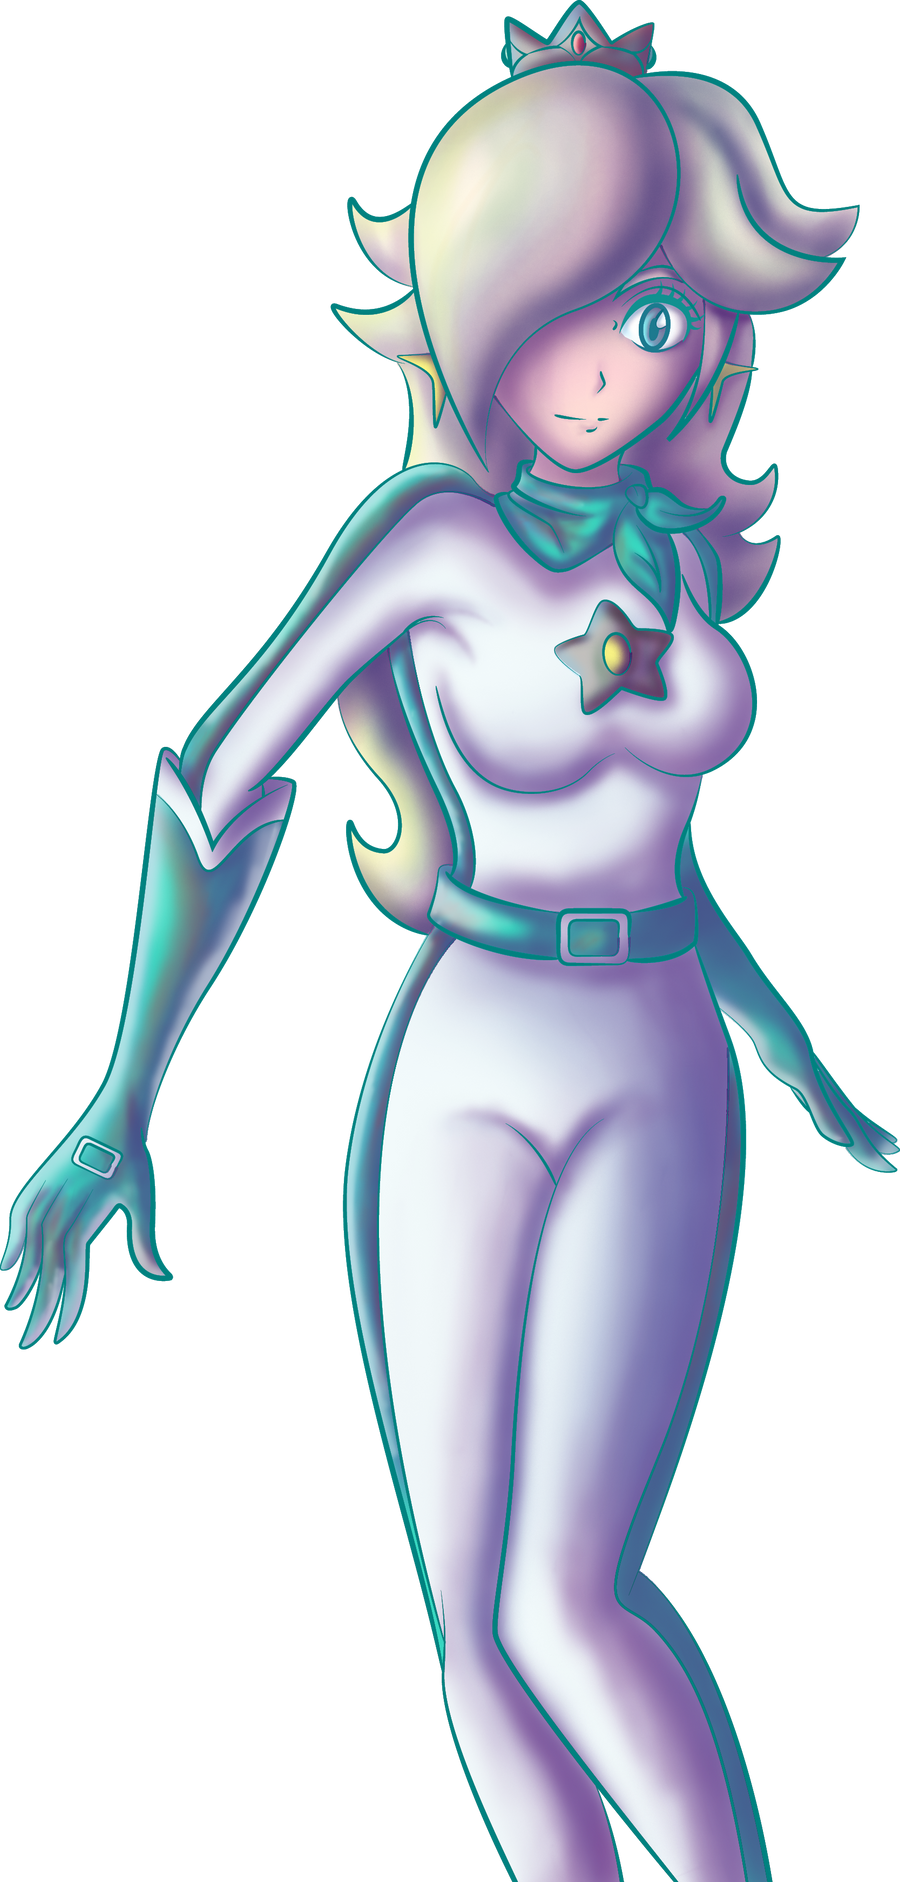 Rosalina Mario Kart coloured by Ugh-first-aid